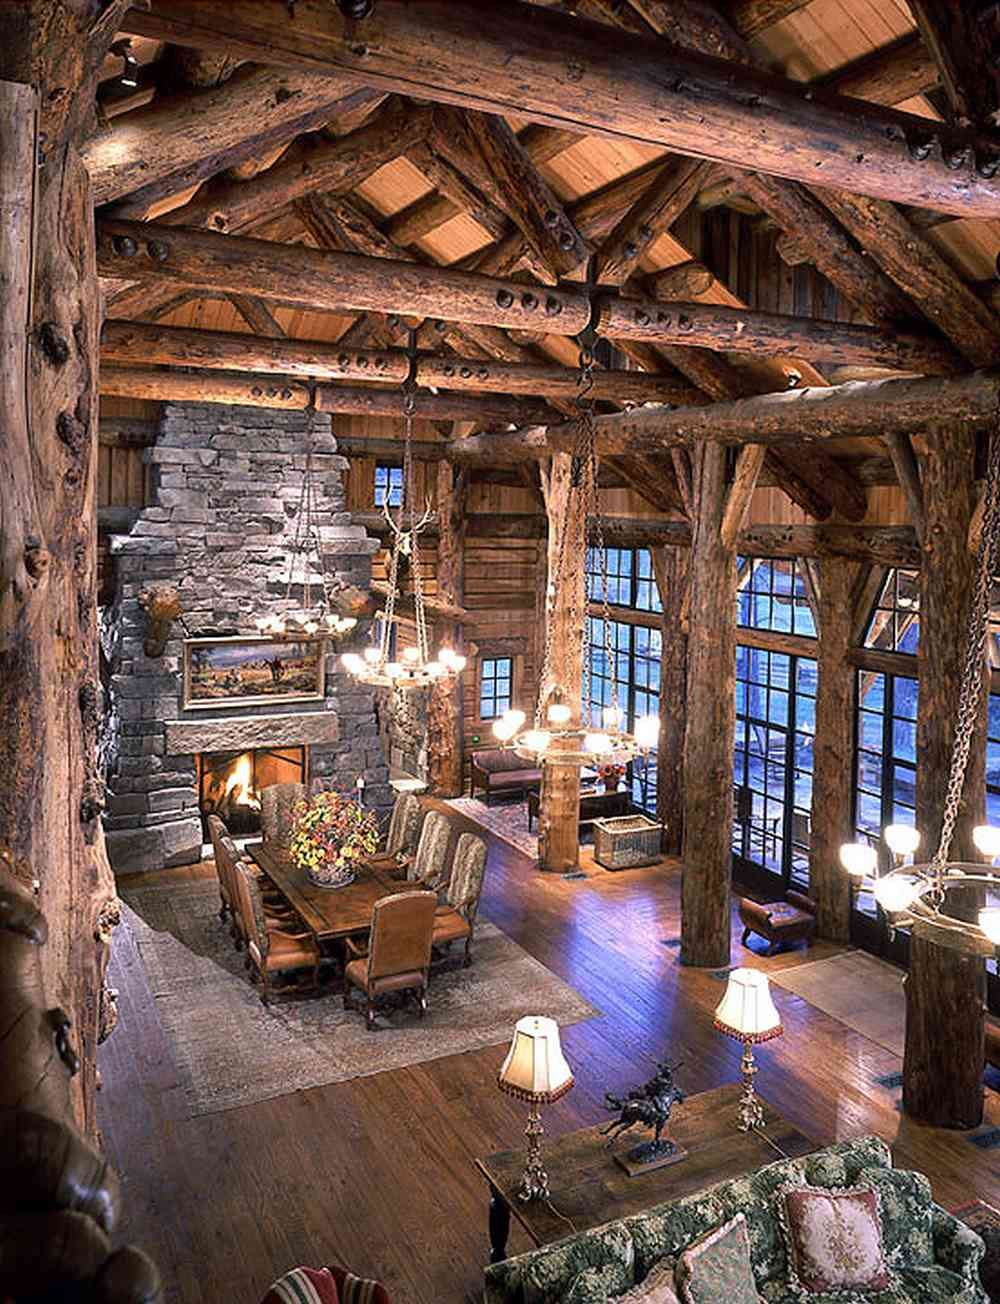 Massive Greatroom with a high soaring ceiling in this Montana home..Rustic American